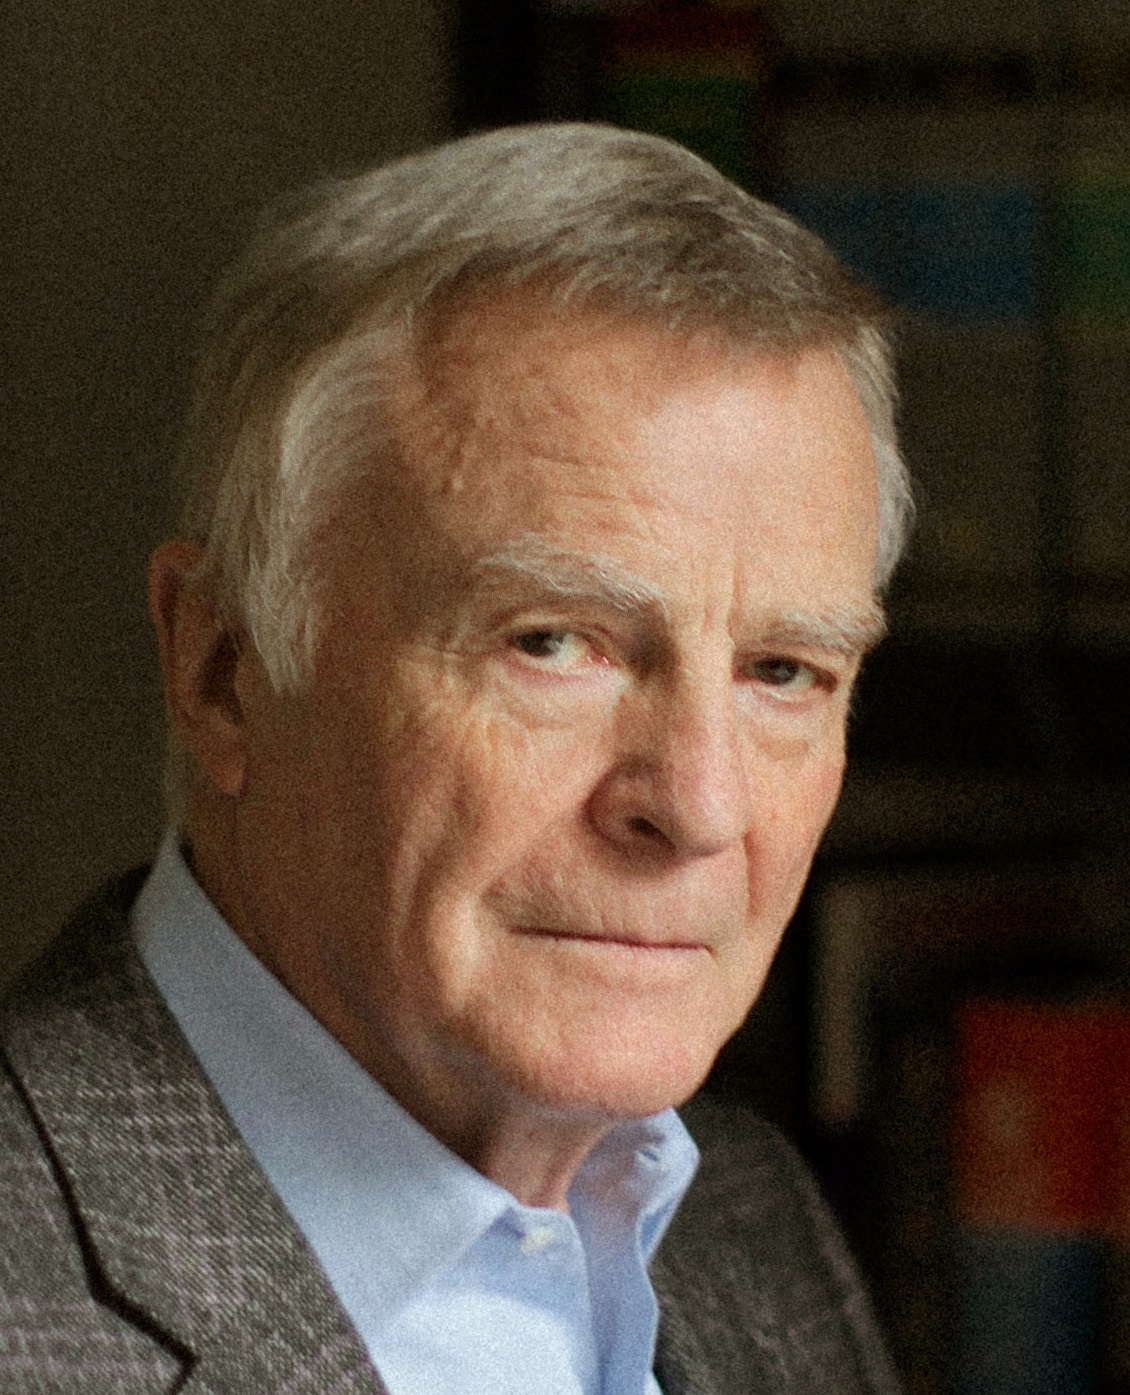 Max Mosley photographed at home in London. Photo Rick Pushinsky.